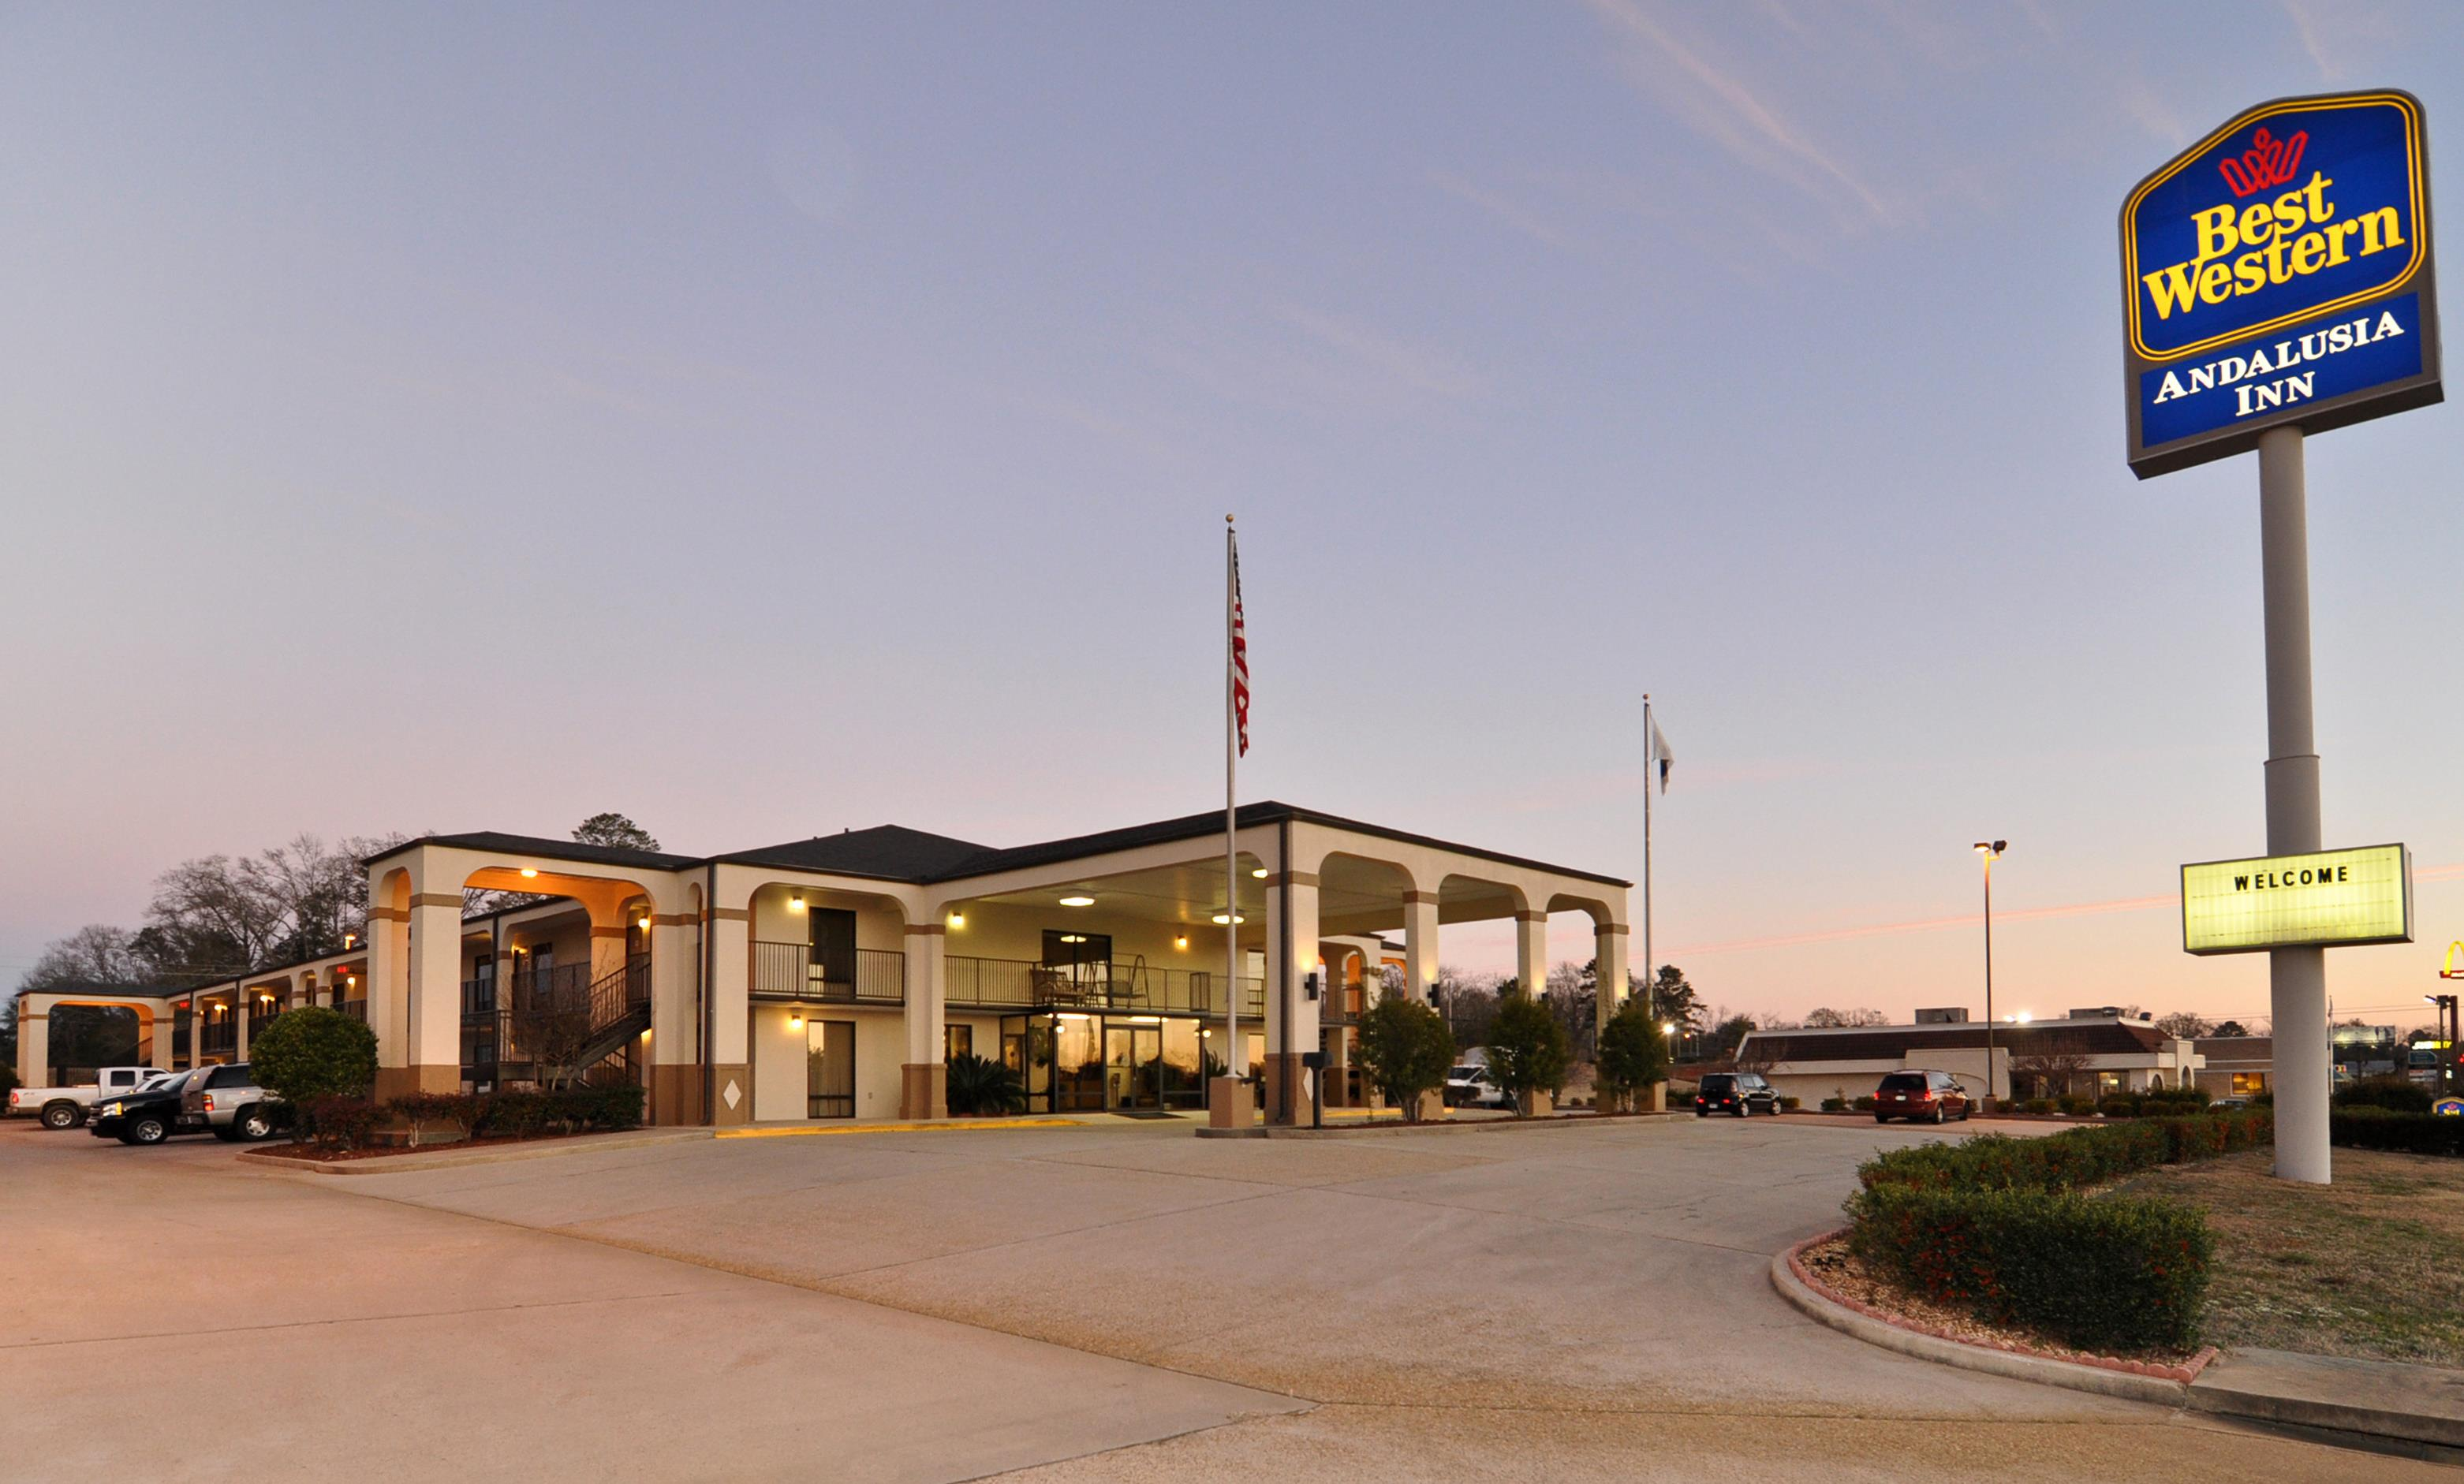 Best Western Andalusia Inn image 11